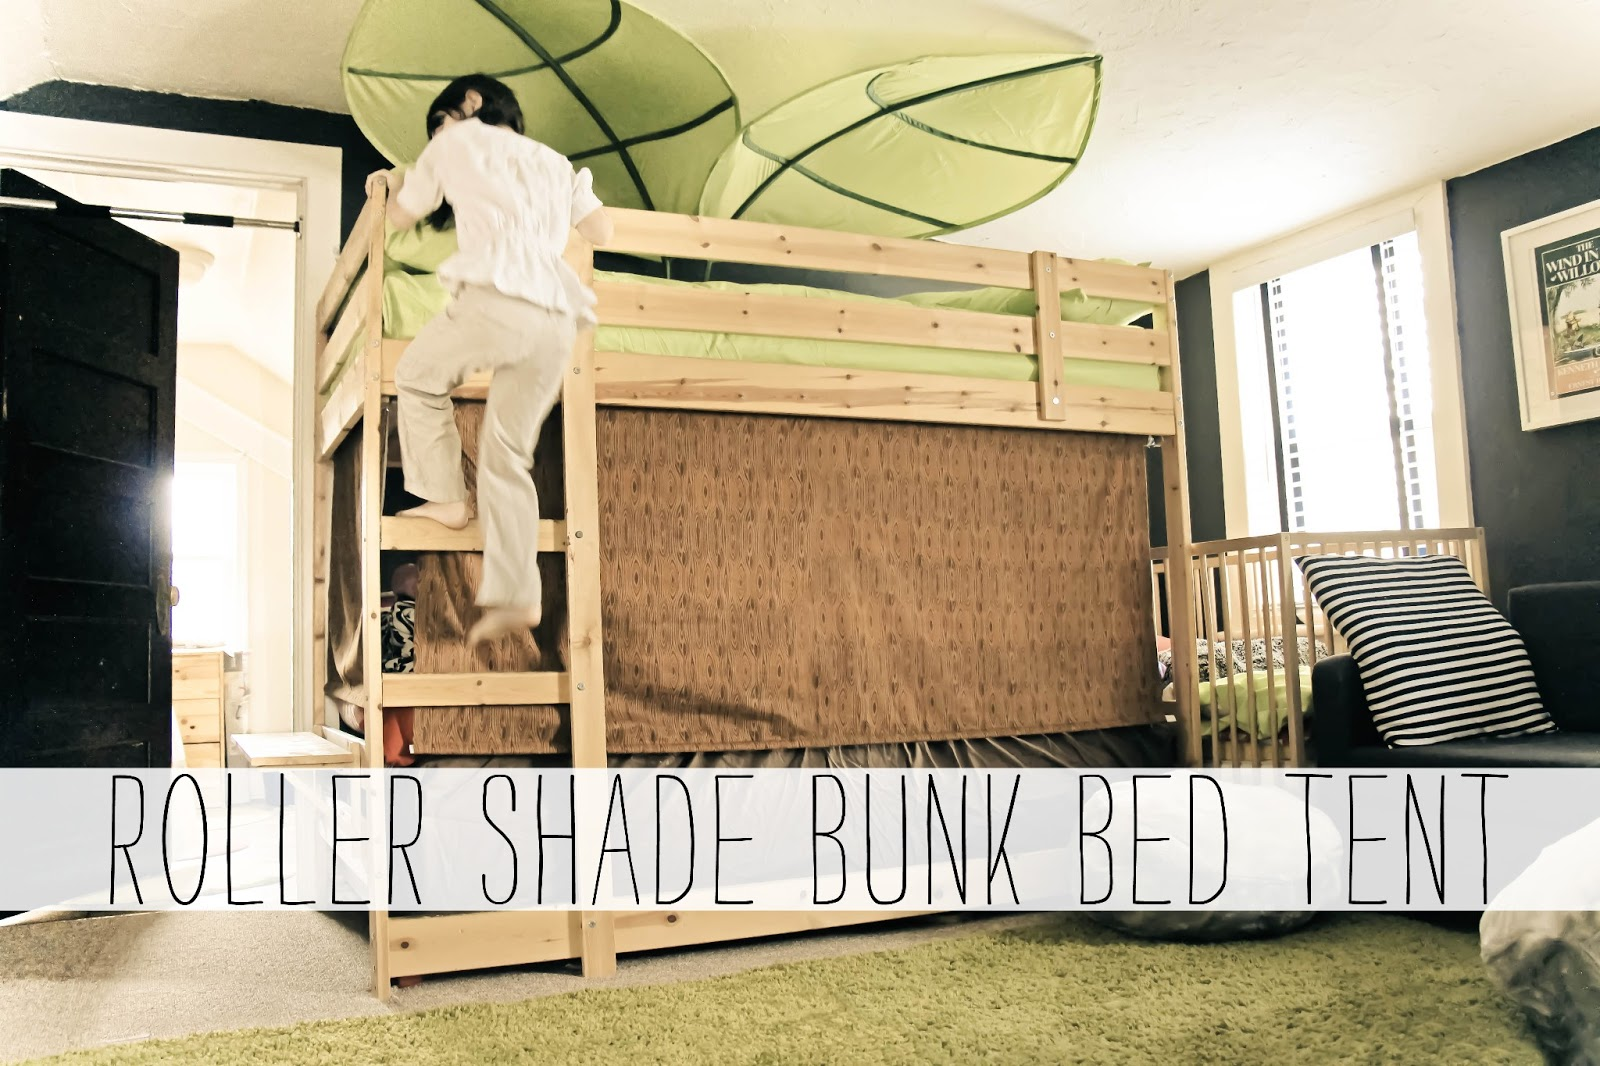 Roller Shade Bunk Bed Treehouse Tent. March 18 2013 & Grosgrain: Roller Shade Bunk Bed Treehouse Tent